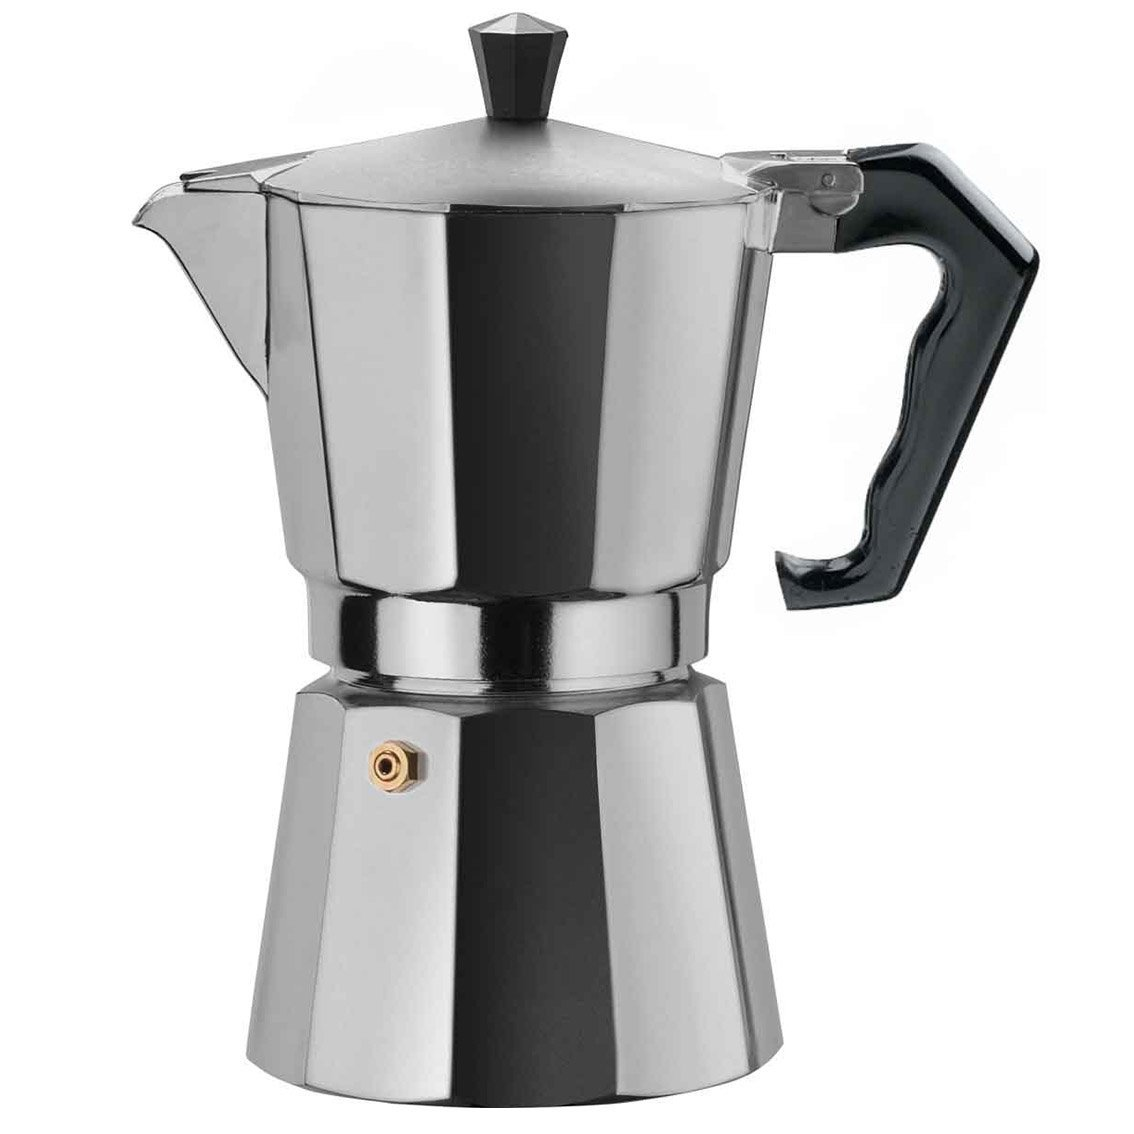 brazil express 9 cup coffee maker aluminium made in italy. Black Bedroom Furniture Sets. Home Design Ideas